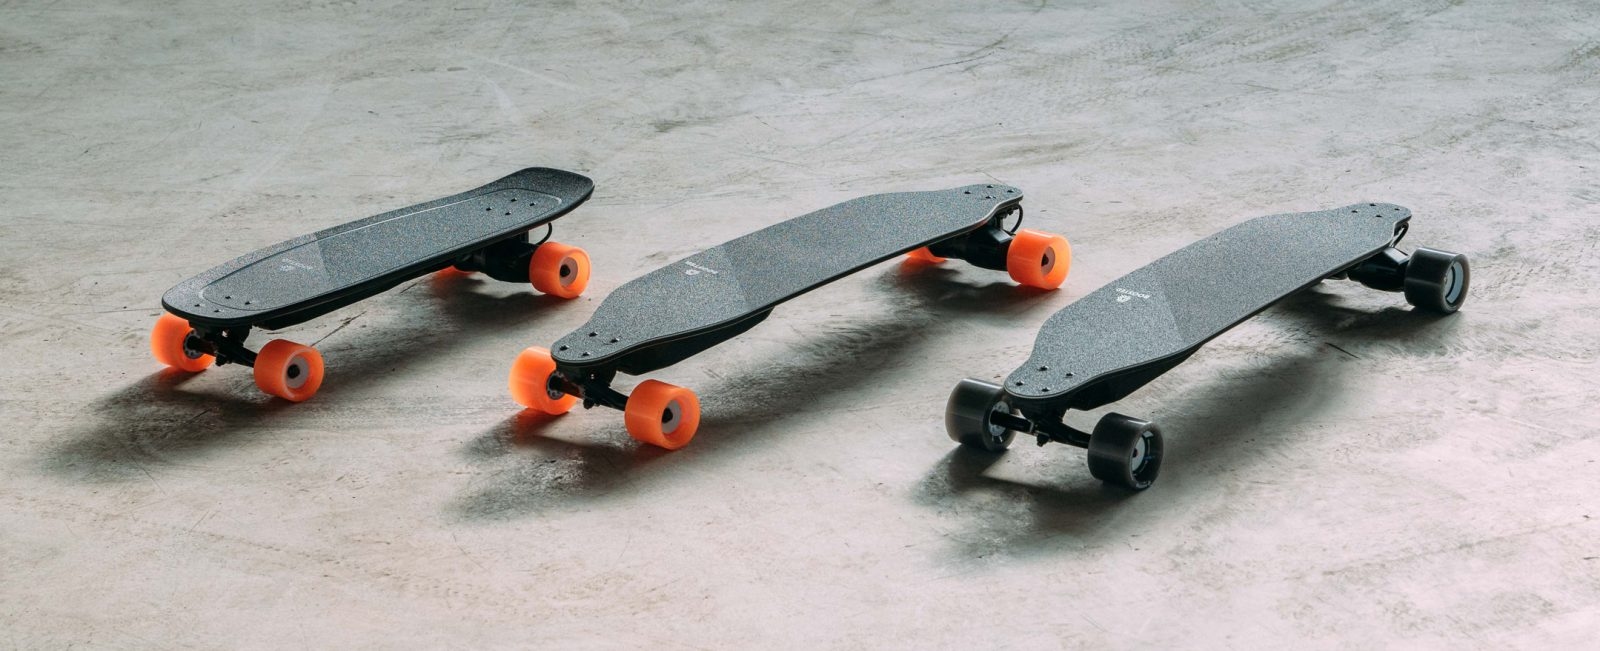 Boosted Boards Unveils New Electric Shortboard Upgrades